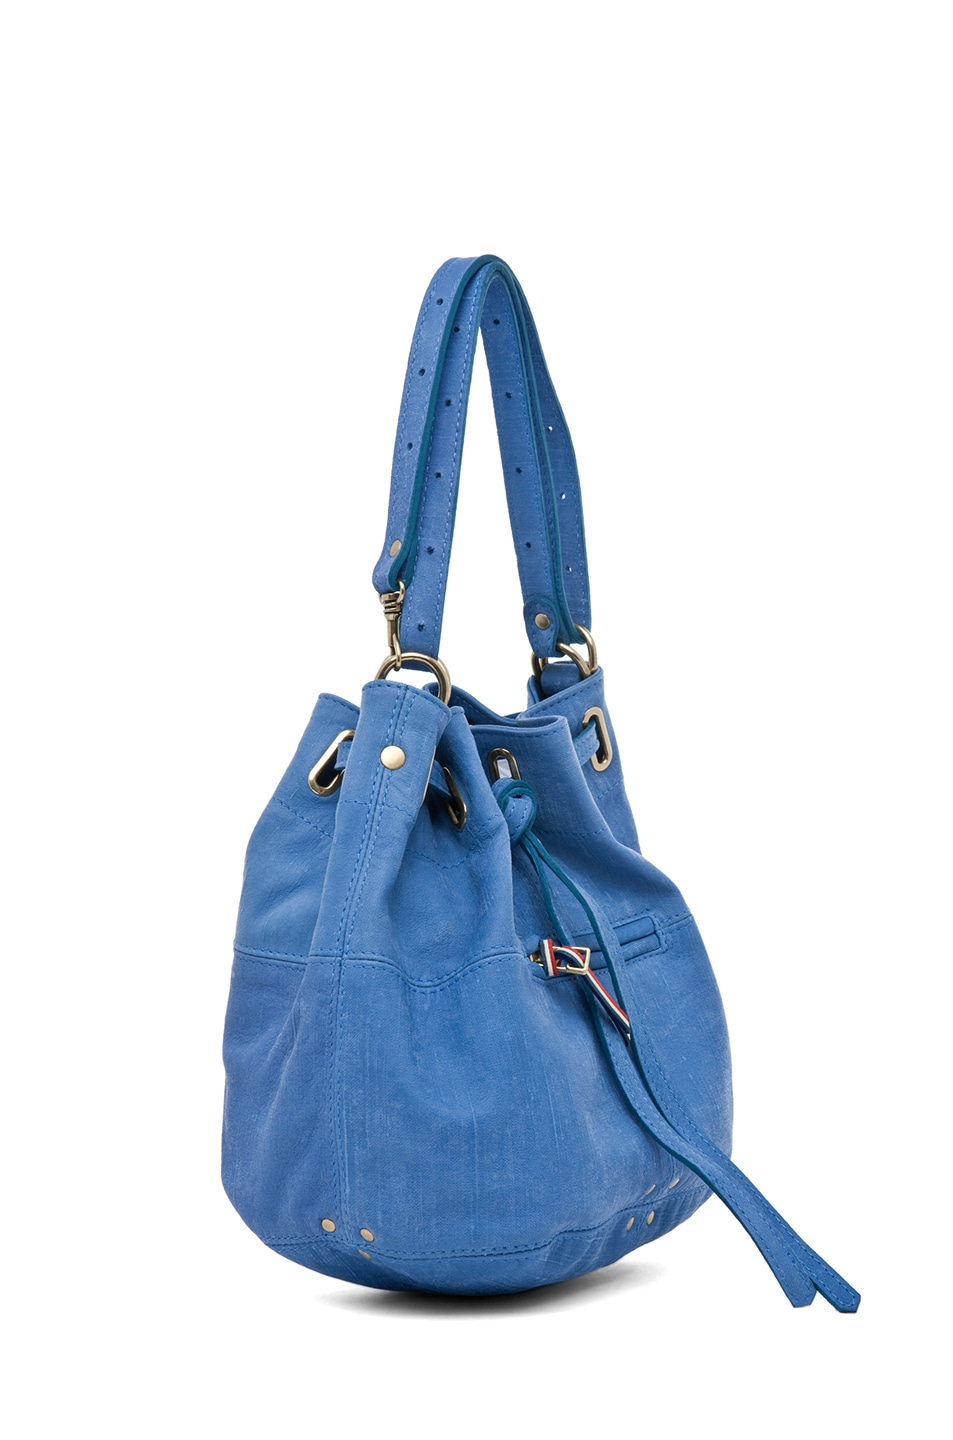 Image 2 of Jerome Dreyfuss Alain S Bag in Denim Bleu